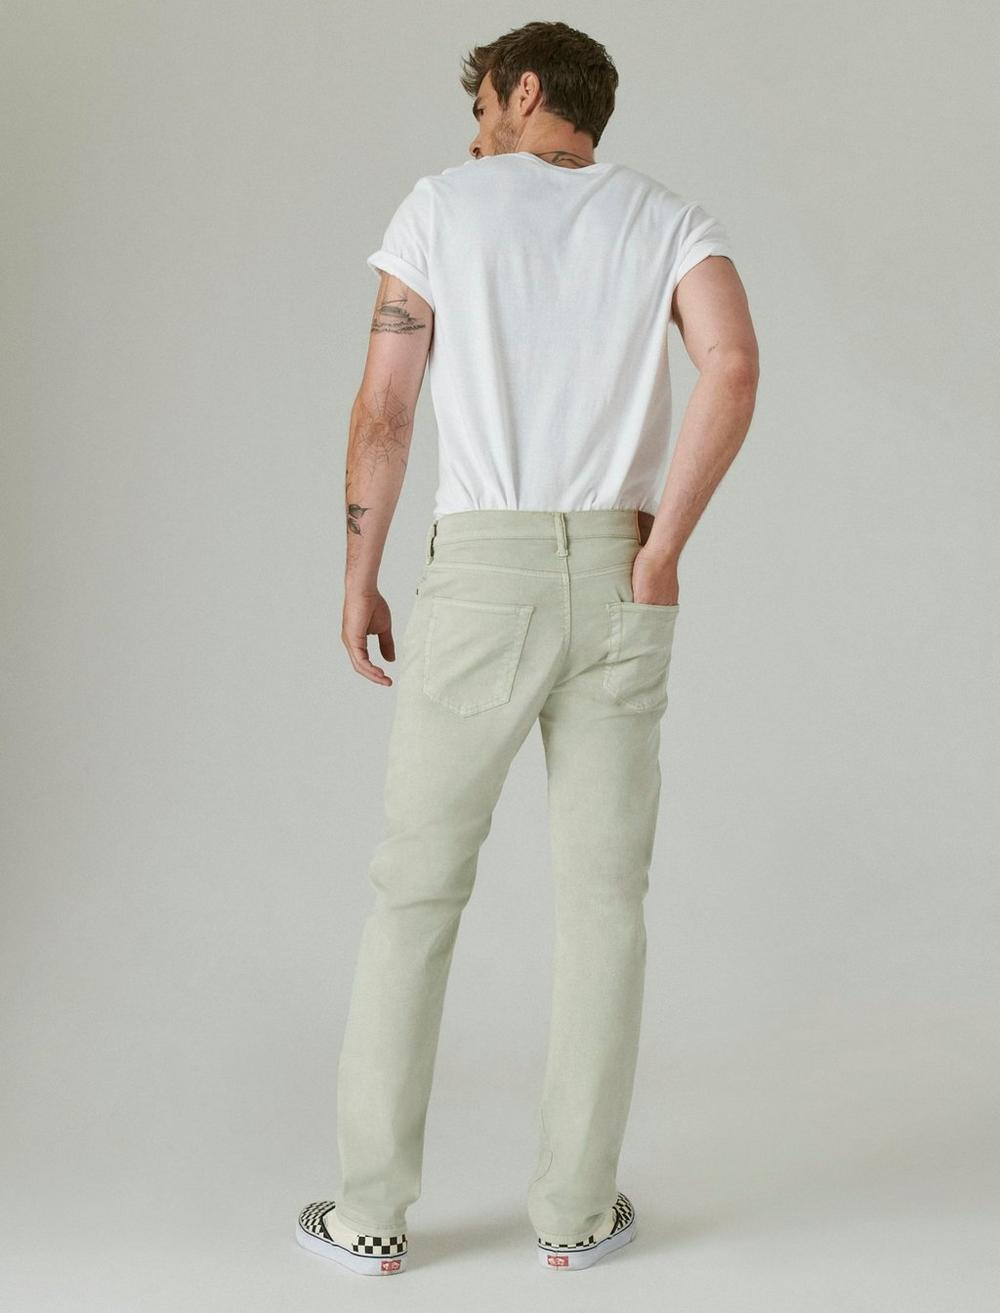 410 ATHLETIC STRAIGHT SATEEN STRETCH JEAN, image 3